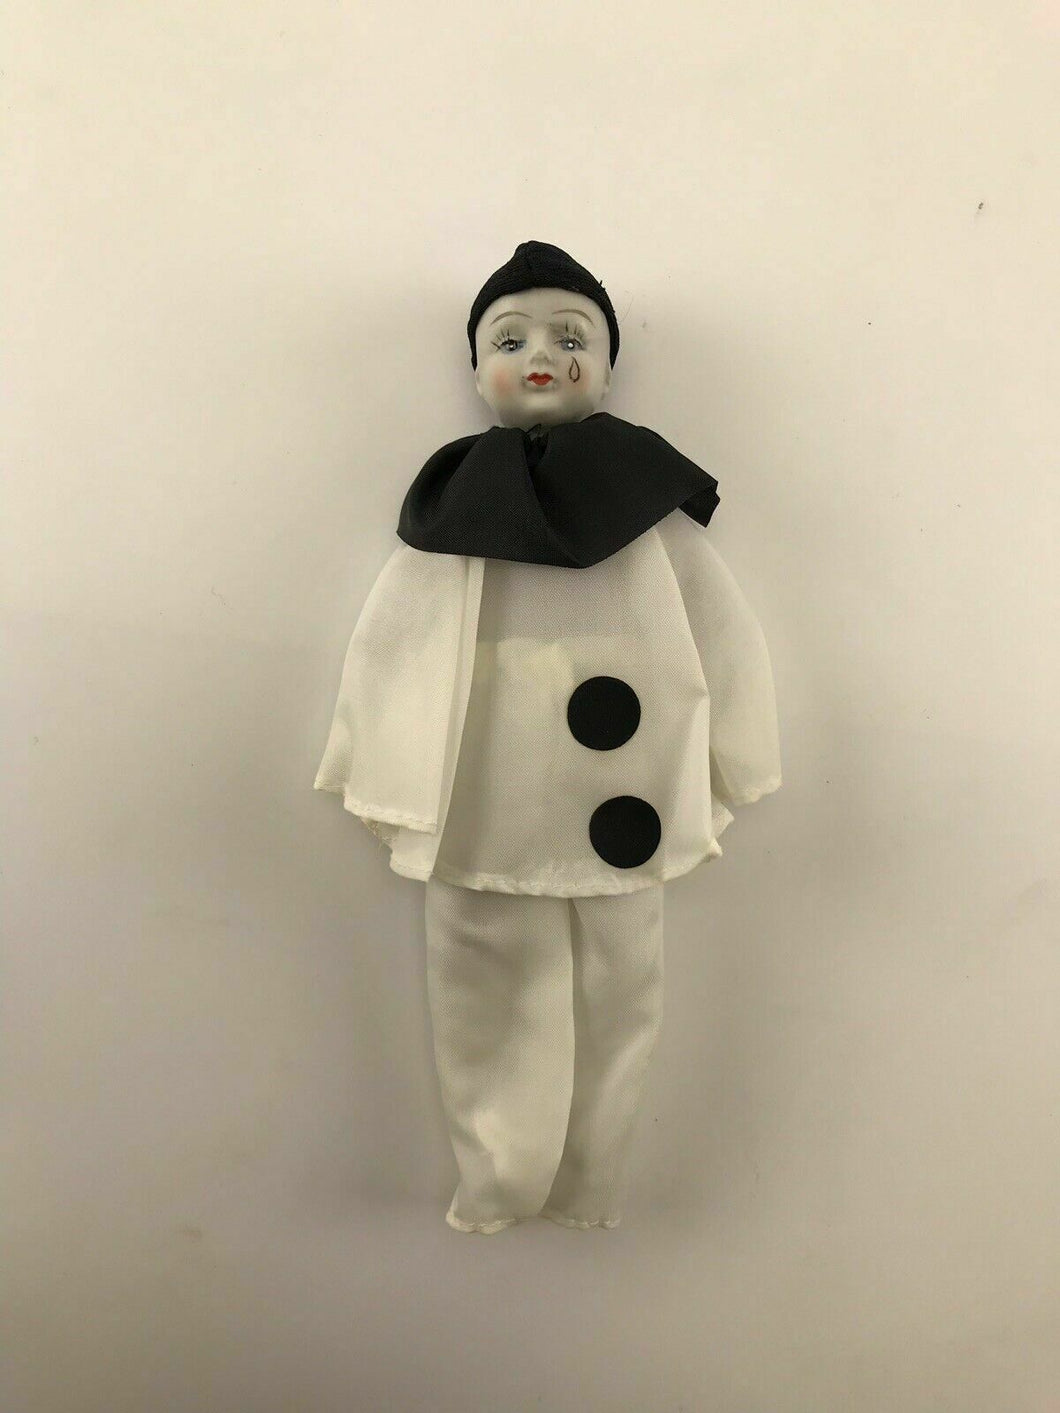 Pierrot Sad Clown Doll - Lot 3230